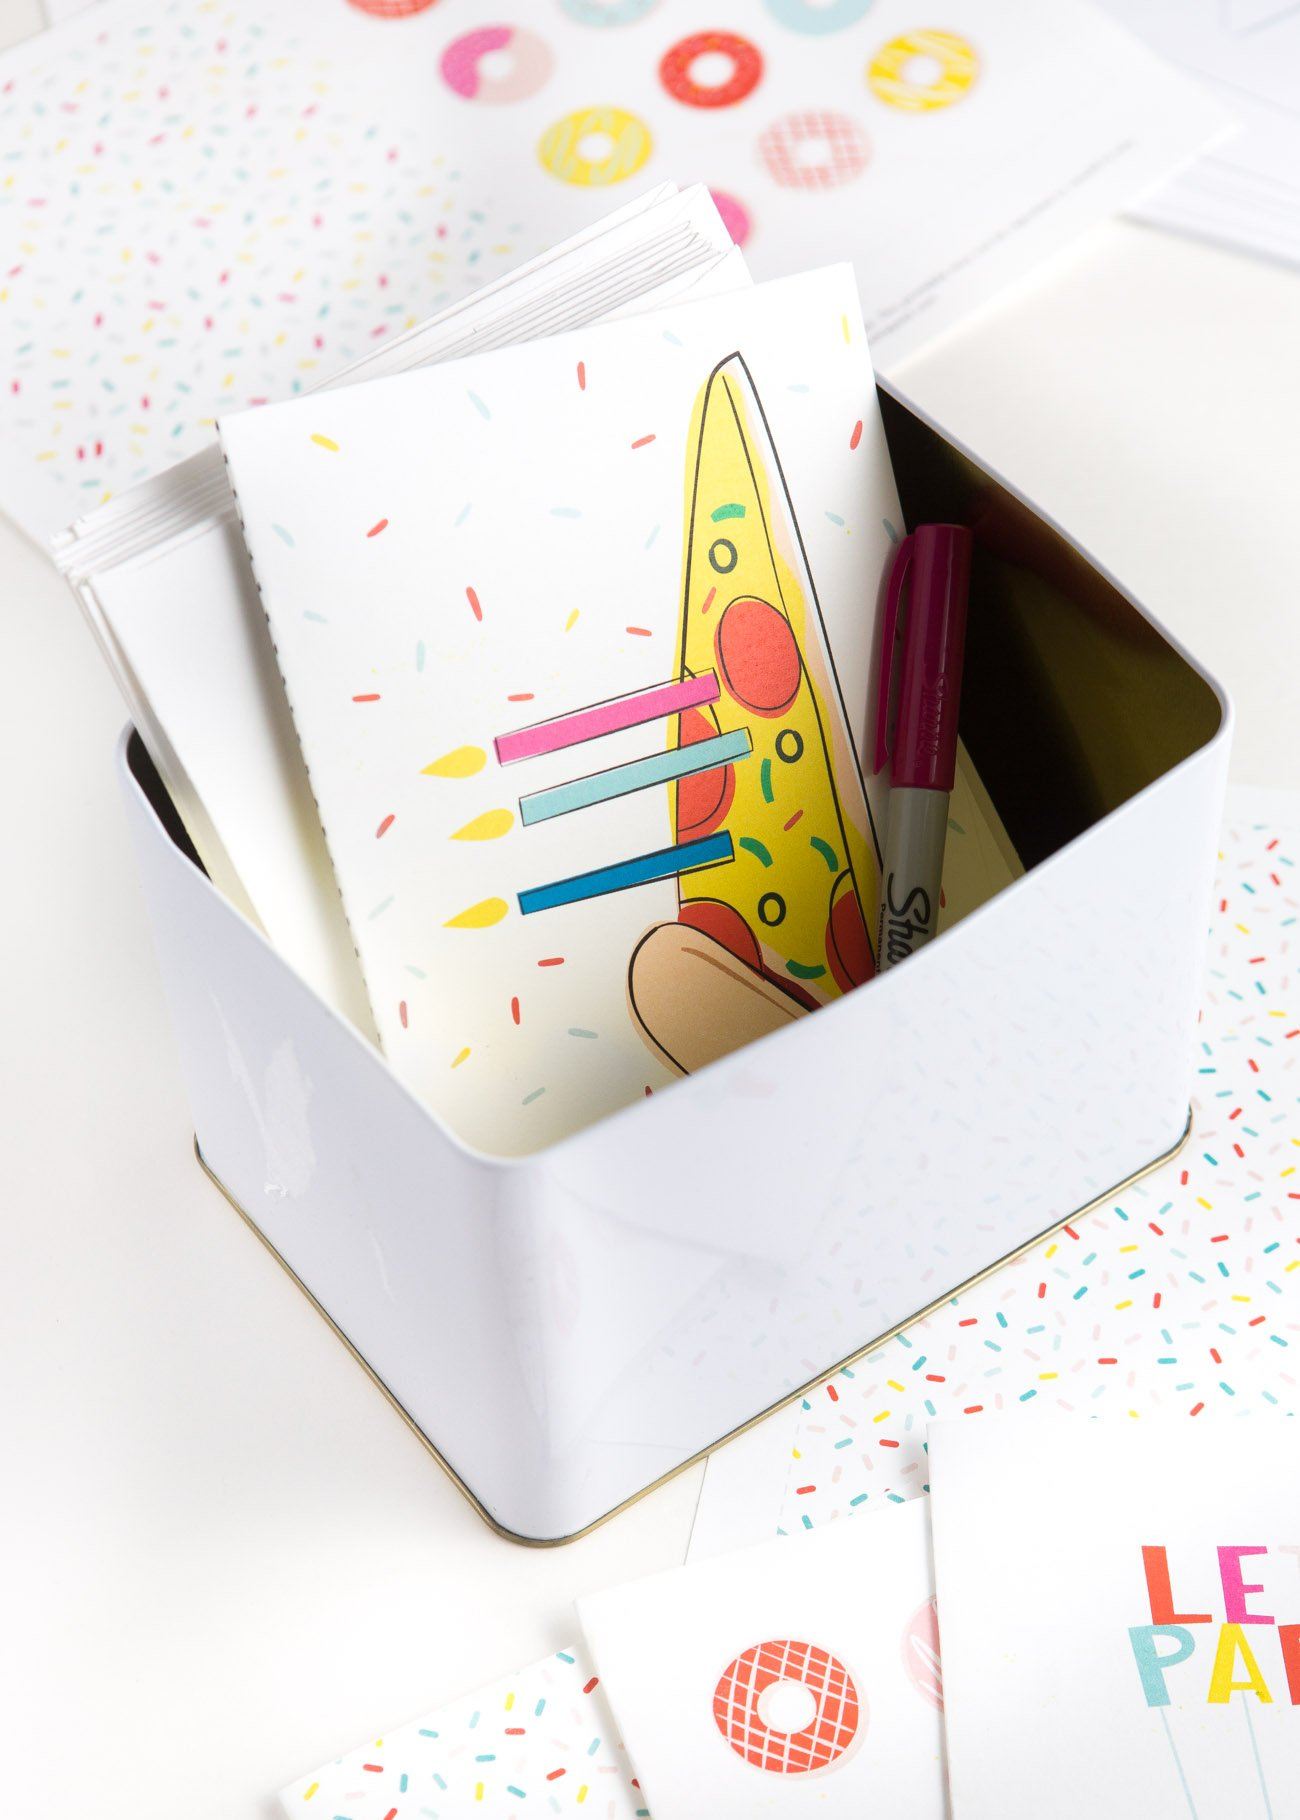 Box of greeting cards with Colorful Pizza Printable Birthday Card with Candles and Sprinkles